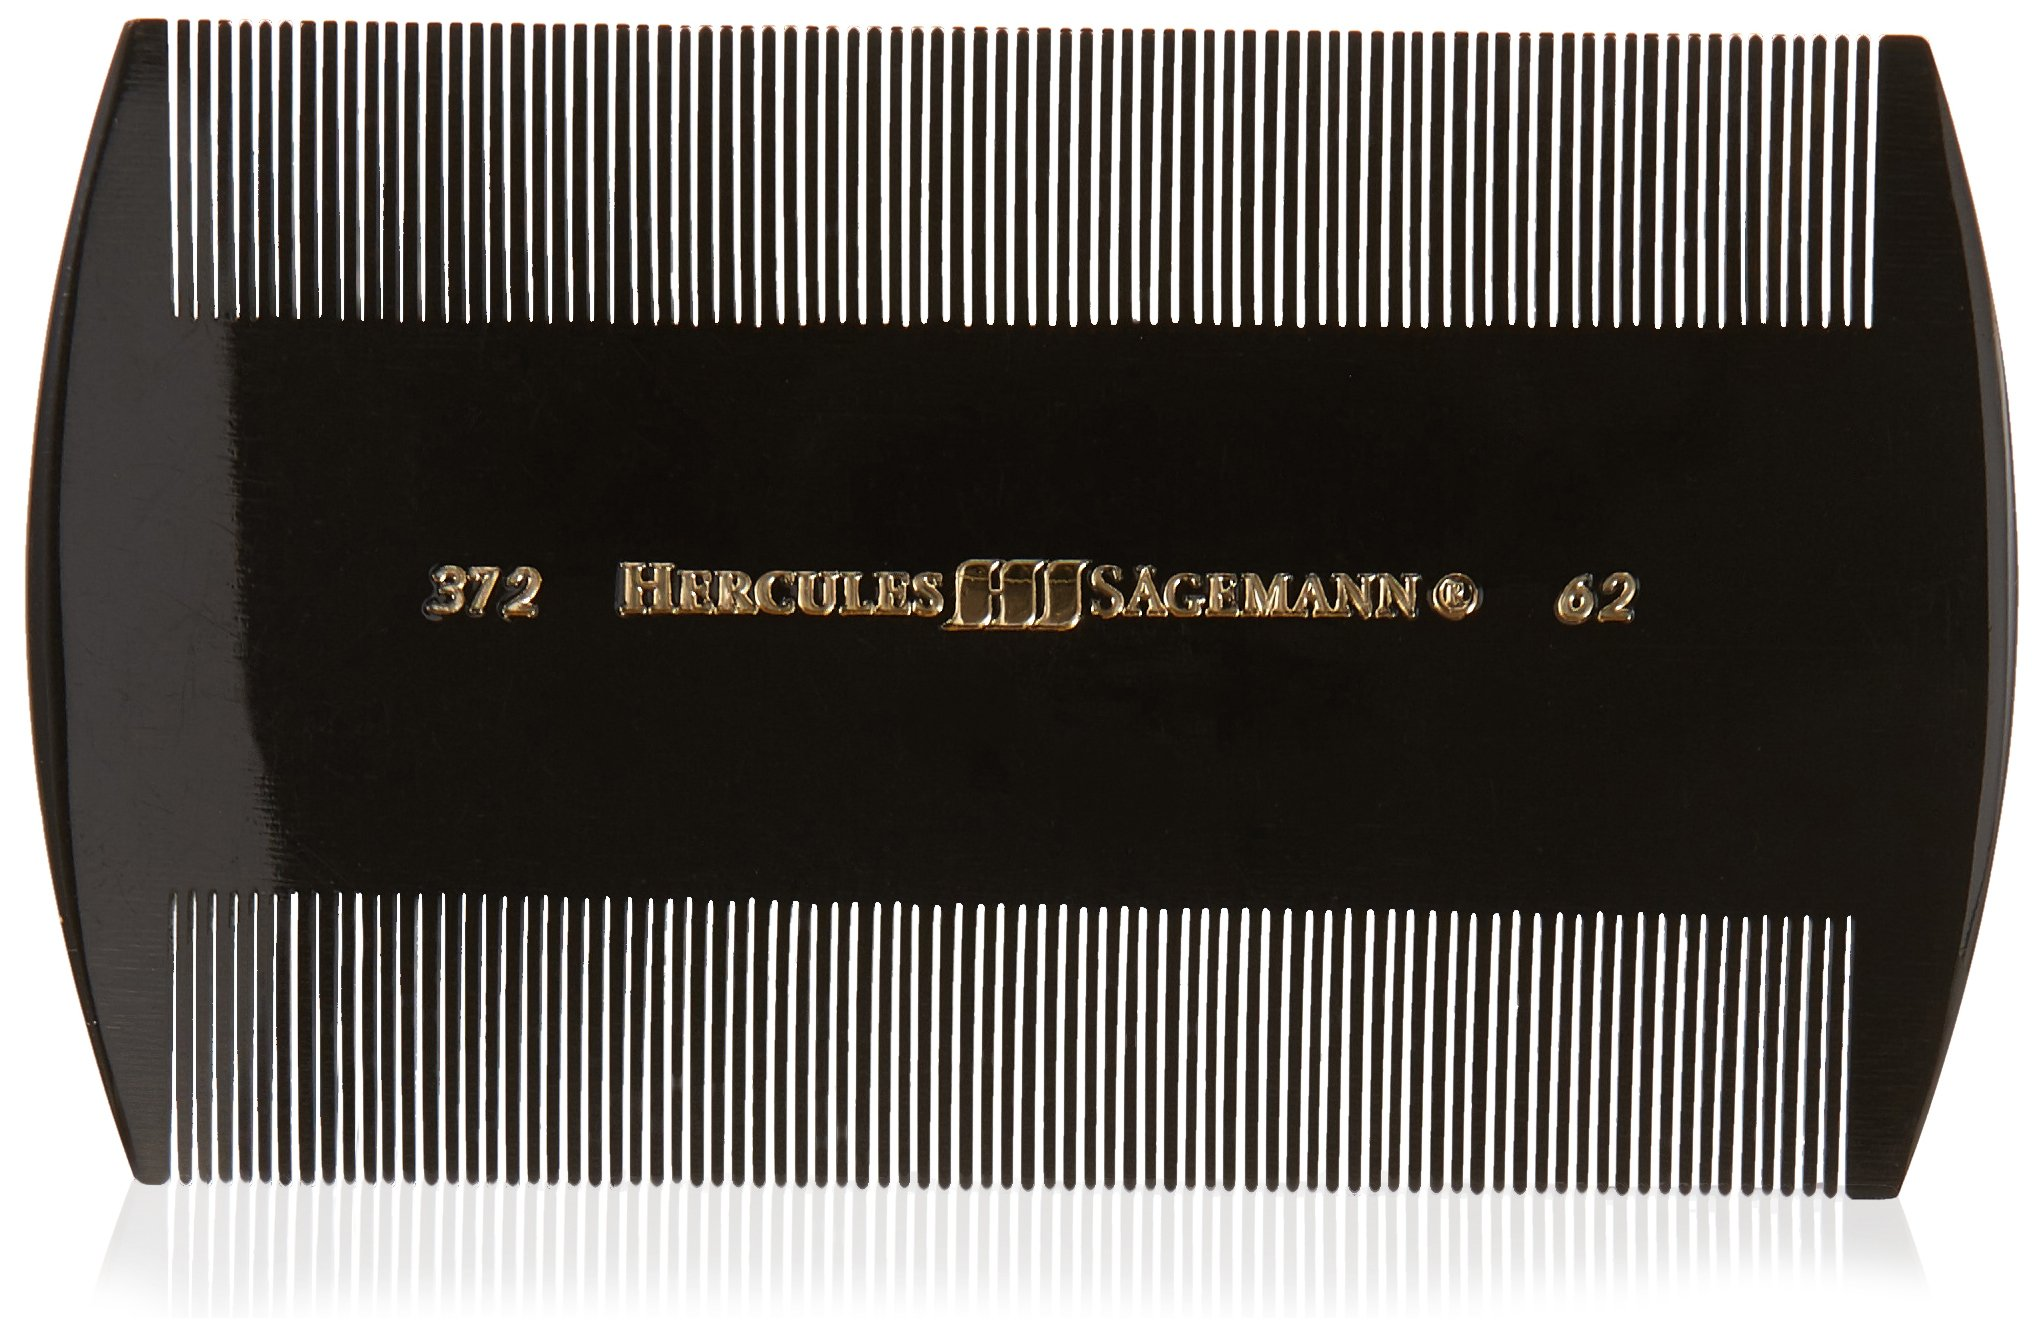 Hercules Sägemann Residue, Nit and Lice Comb | Seamless - Professional - Perfection in Design and Function - Hard Rubber (Ebonite) - Made in Germany